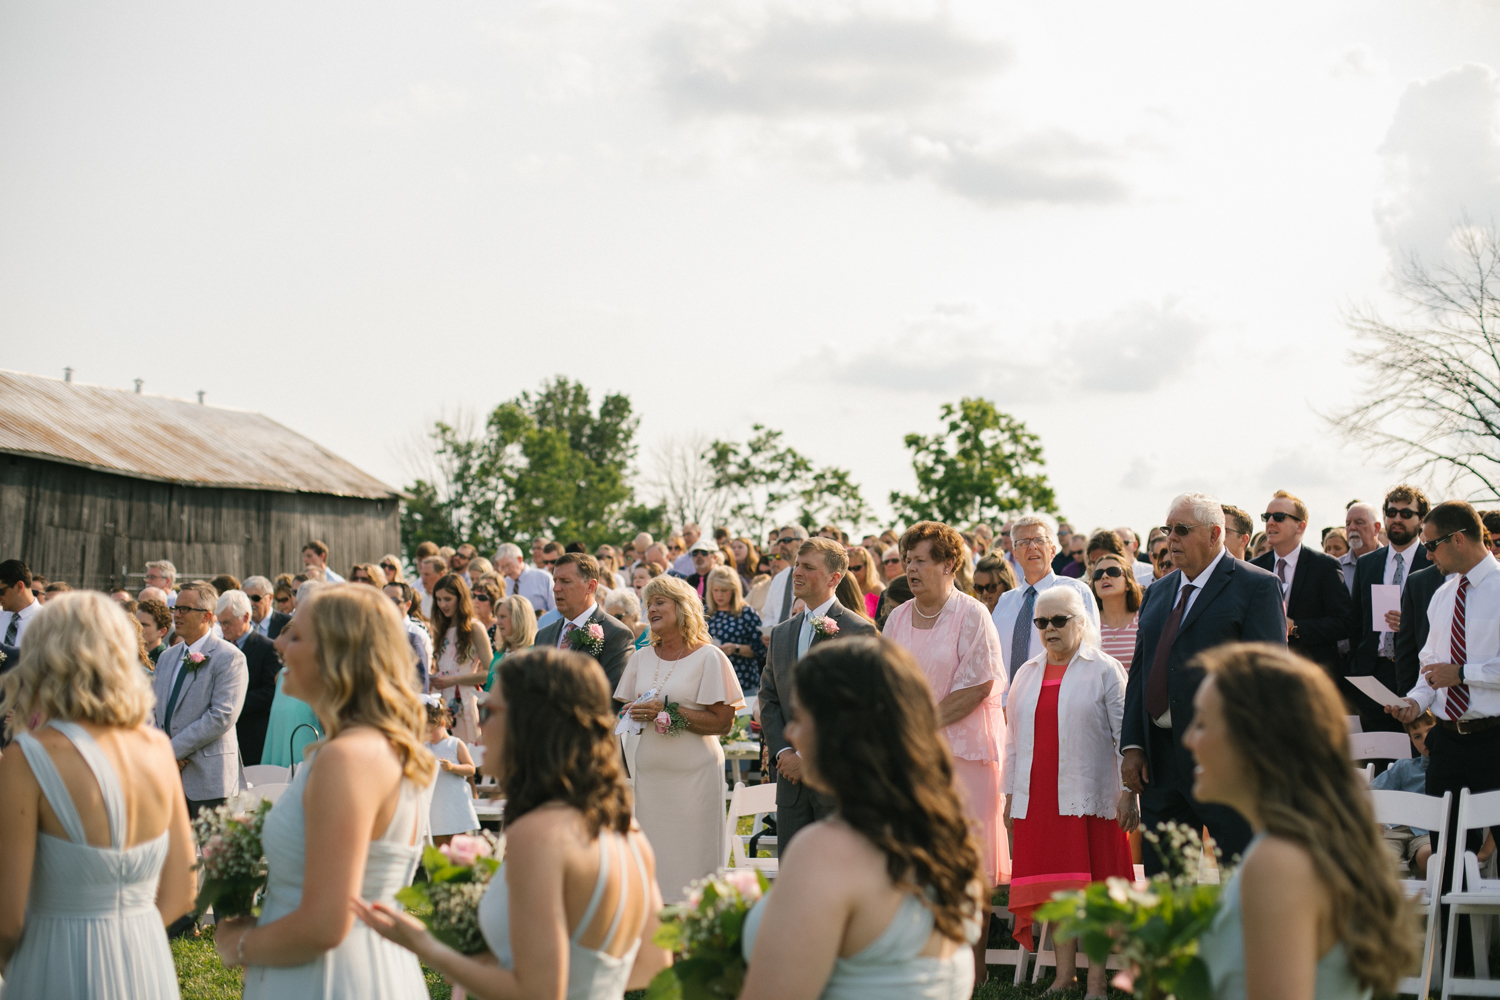 2019.06.01_CraskWedding_Starks-98.jpg